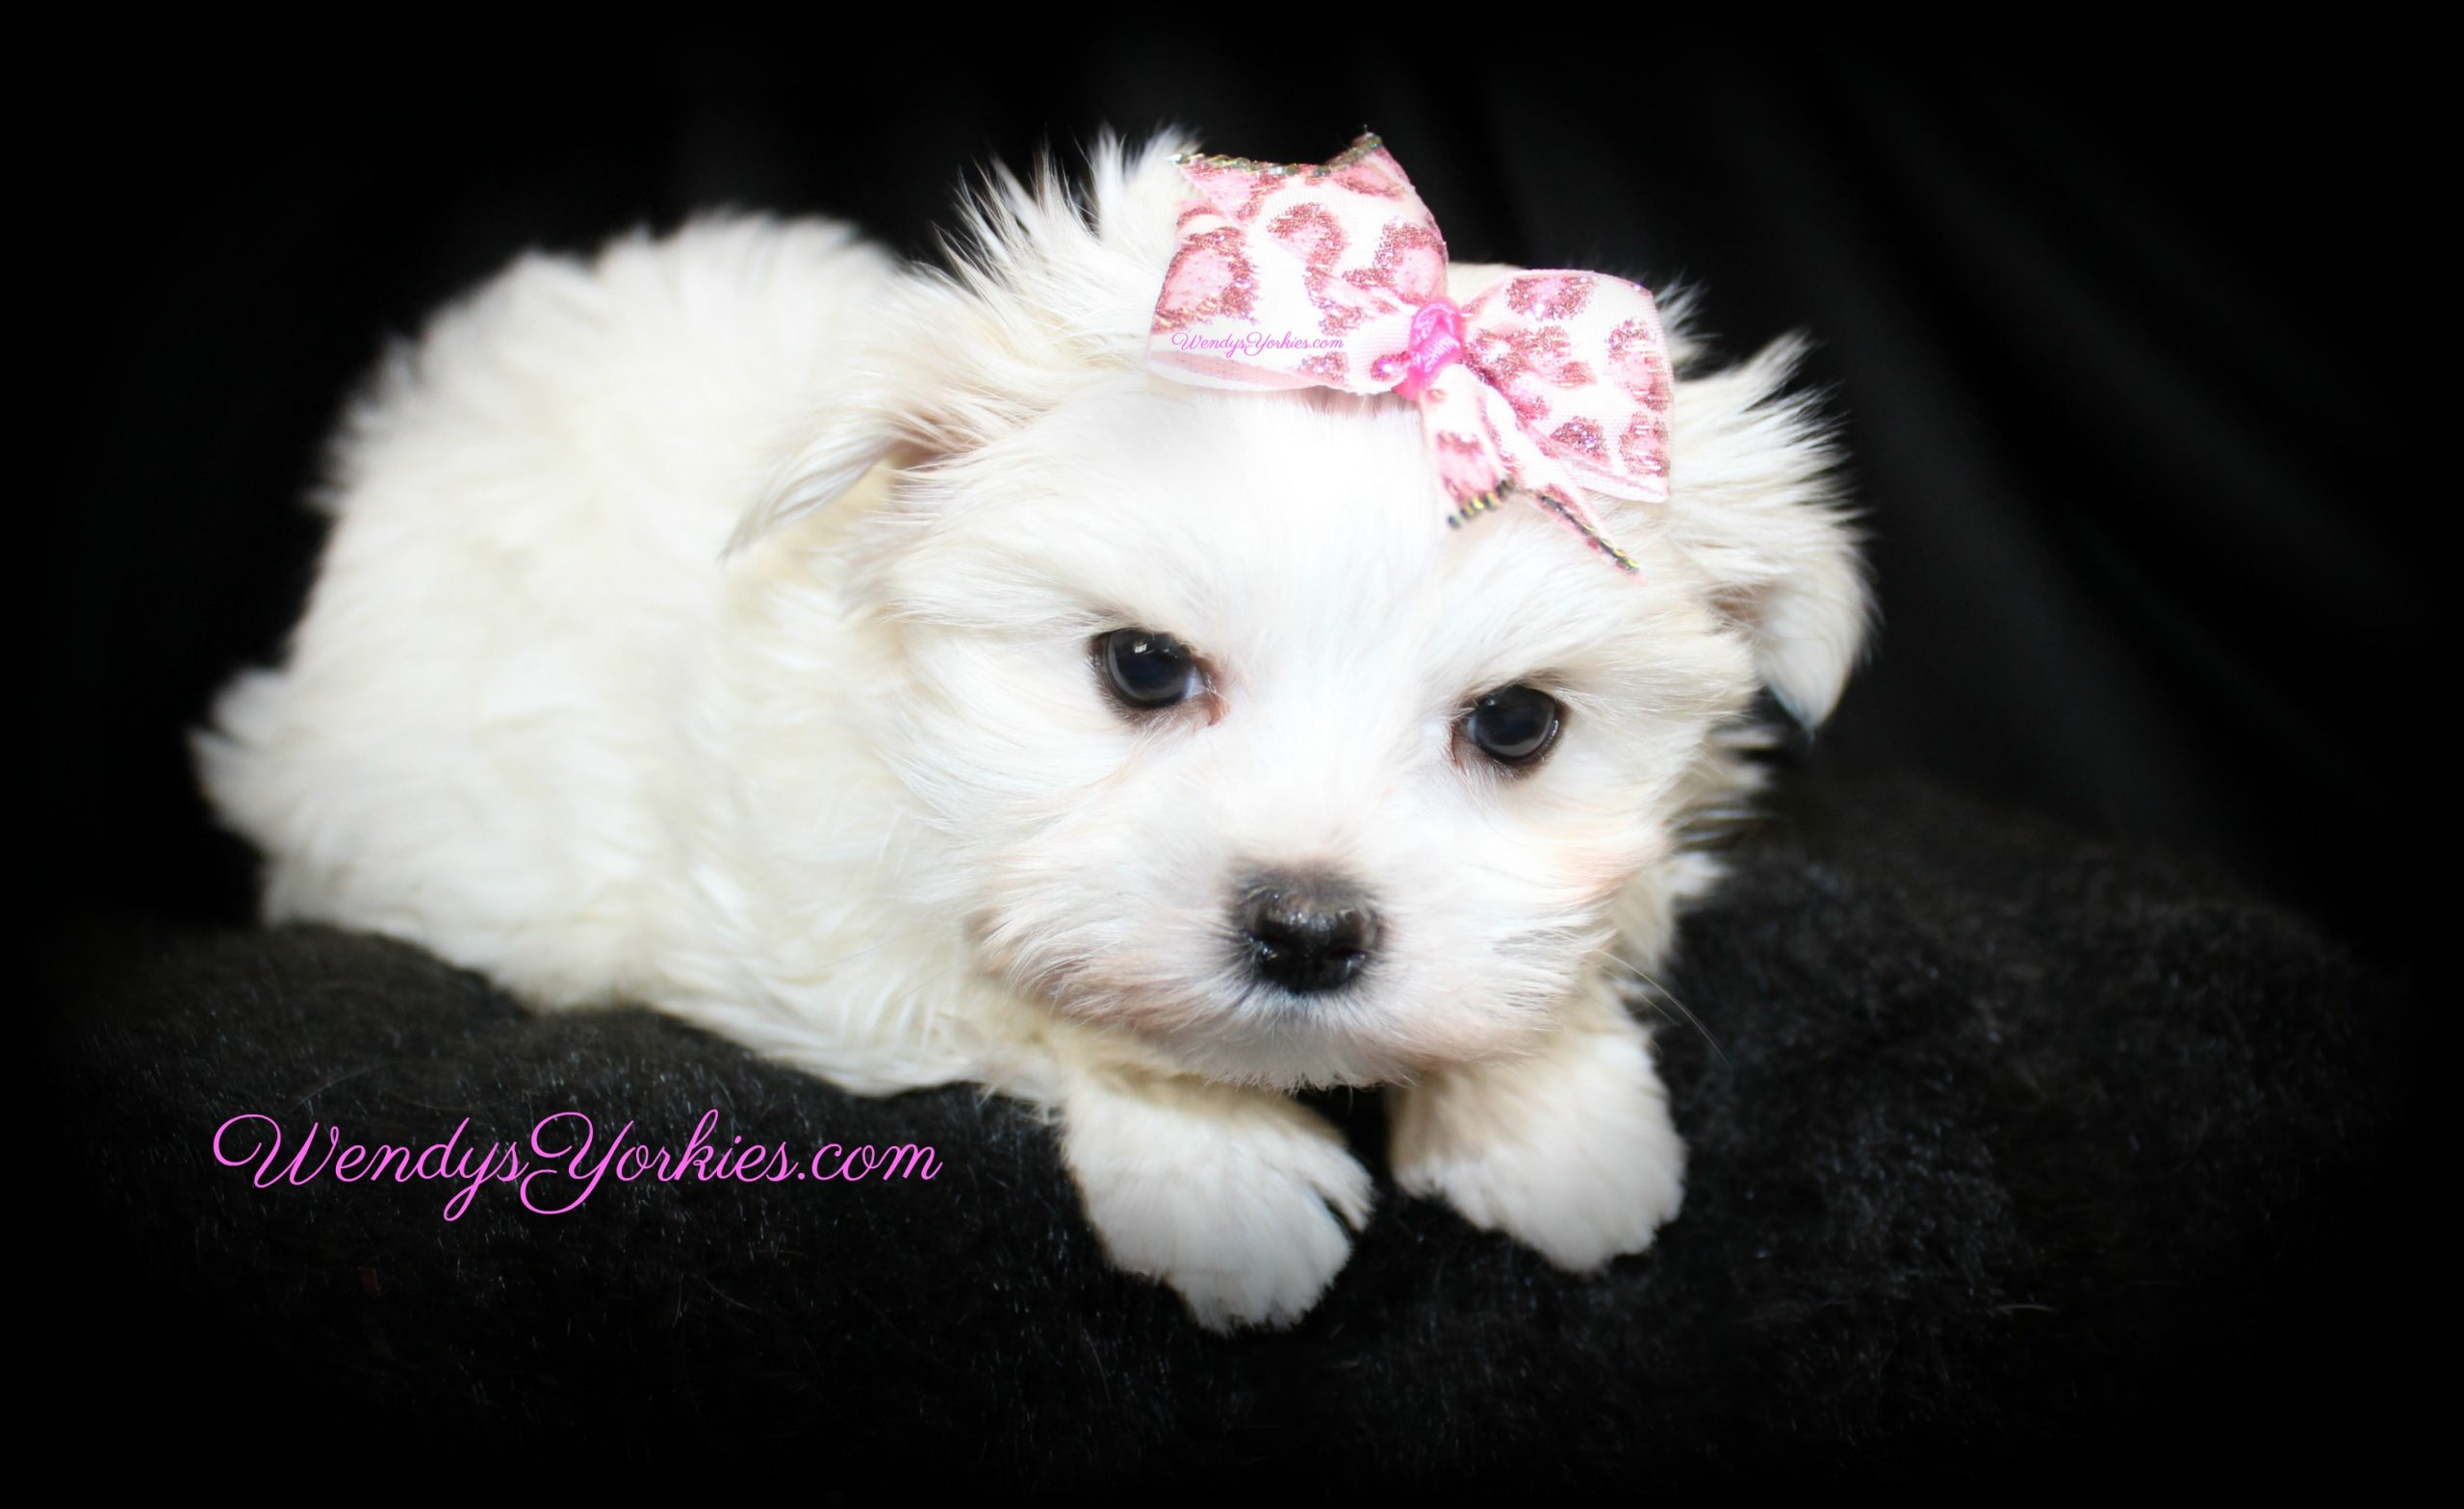 Tiny Maltese puppy for sale in Texas, Ellie, WendysYorkies.com